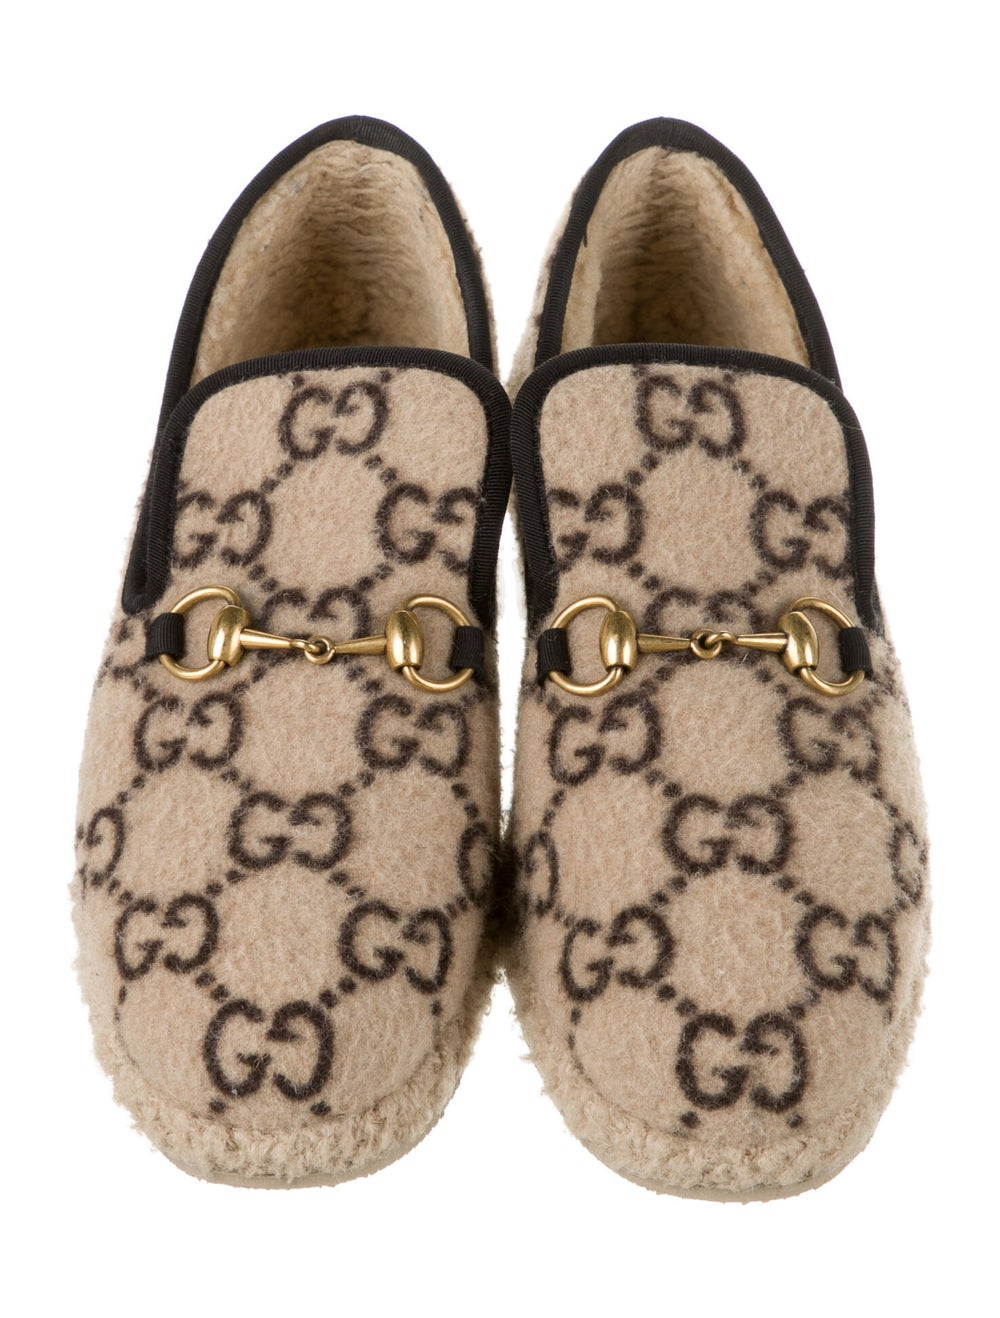 Gucci 1955 Horsebit Accent Slippers - image 3